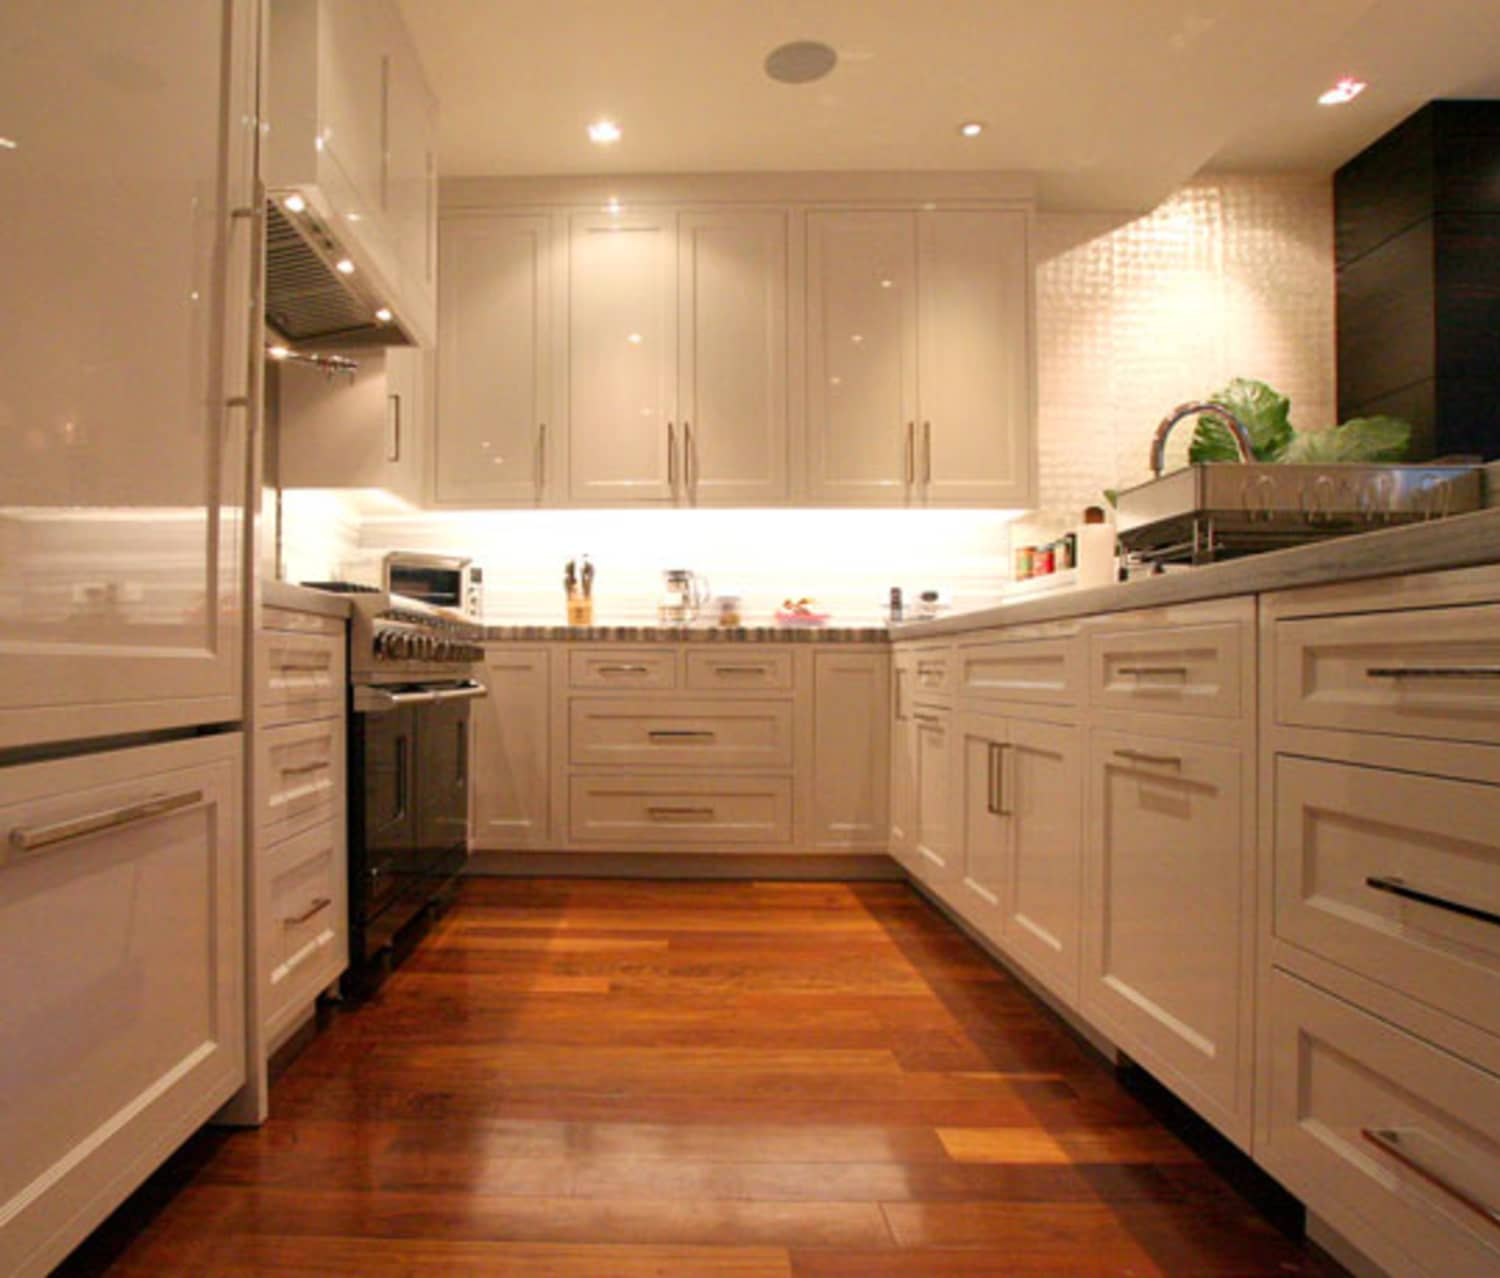 Gourmet Kitchen Definition: Doryn's Lovingly Lacquered Cooking Lab